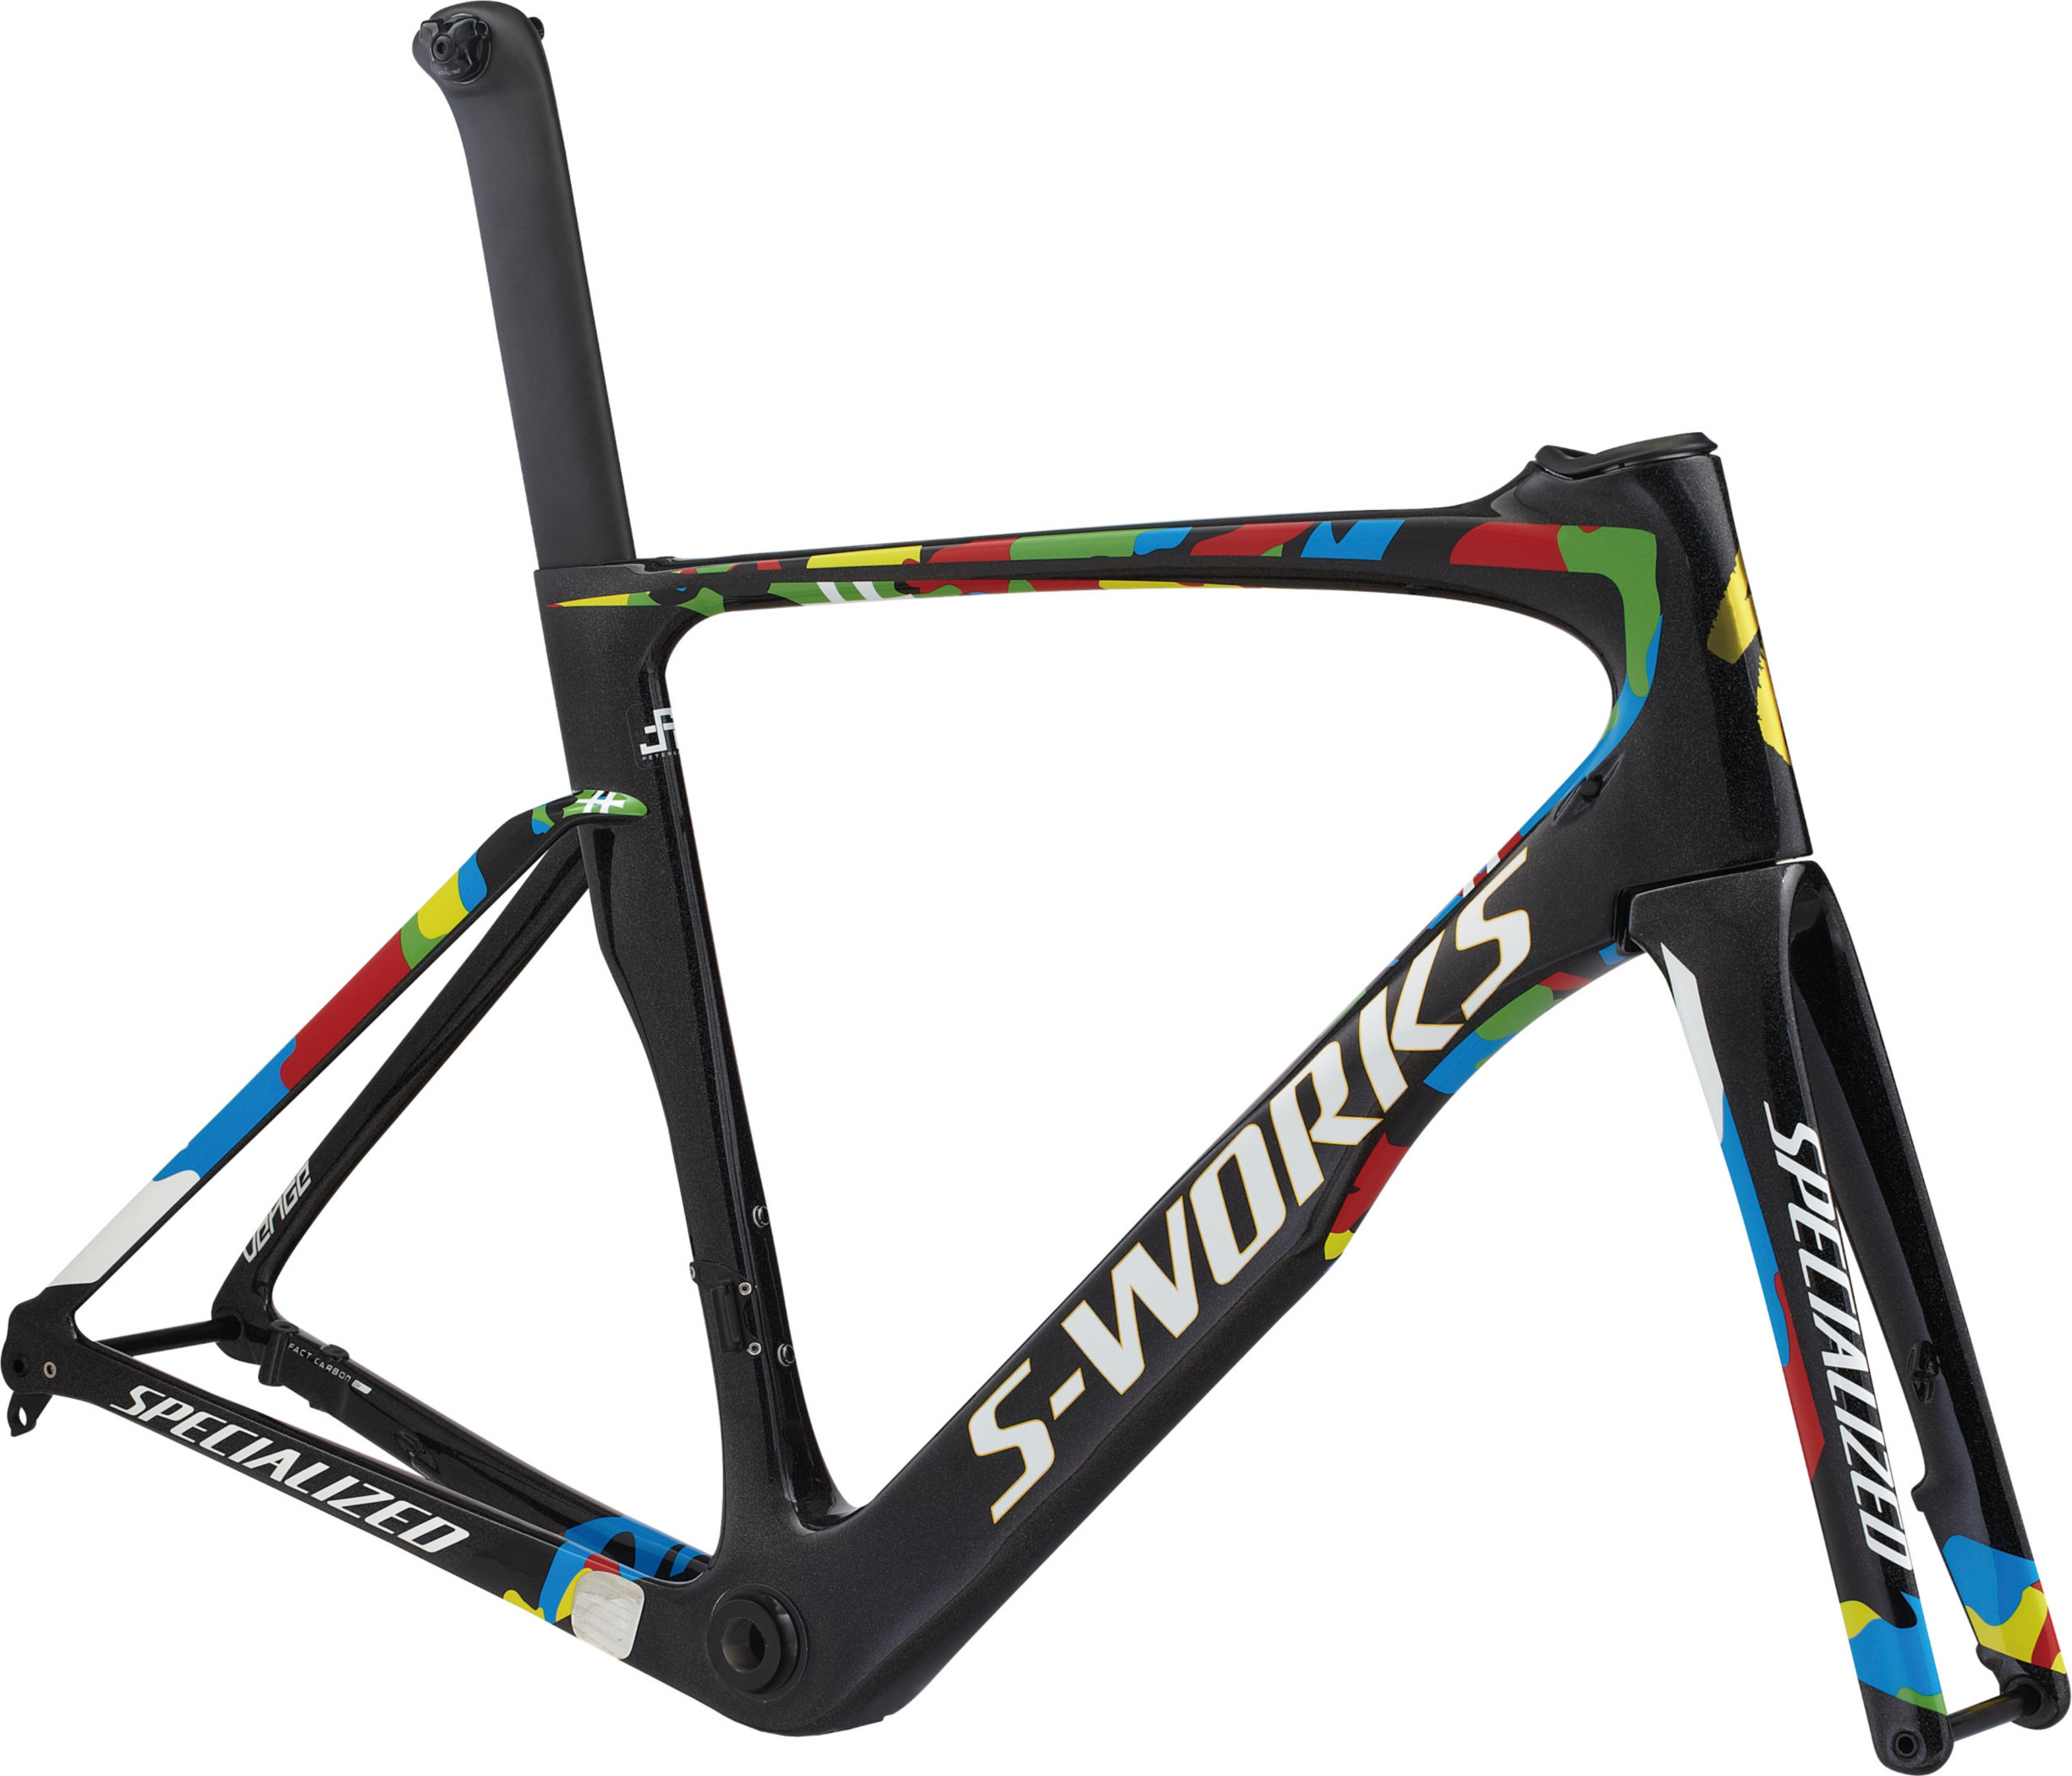 SPECIALIZED SW VENGE DISC VIAS FRMSET SAGAN WC 46 - Bike Maniac